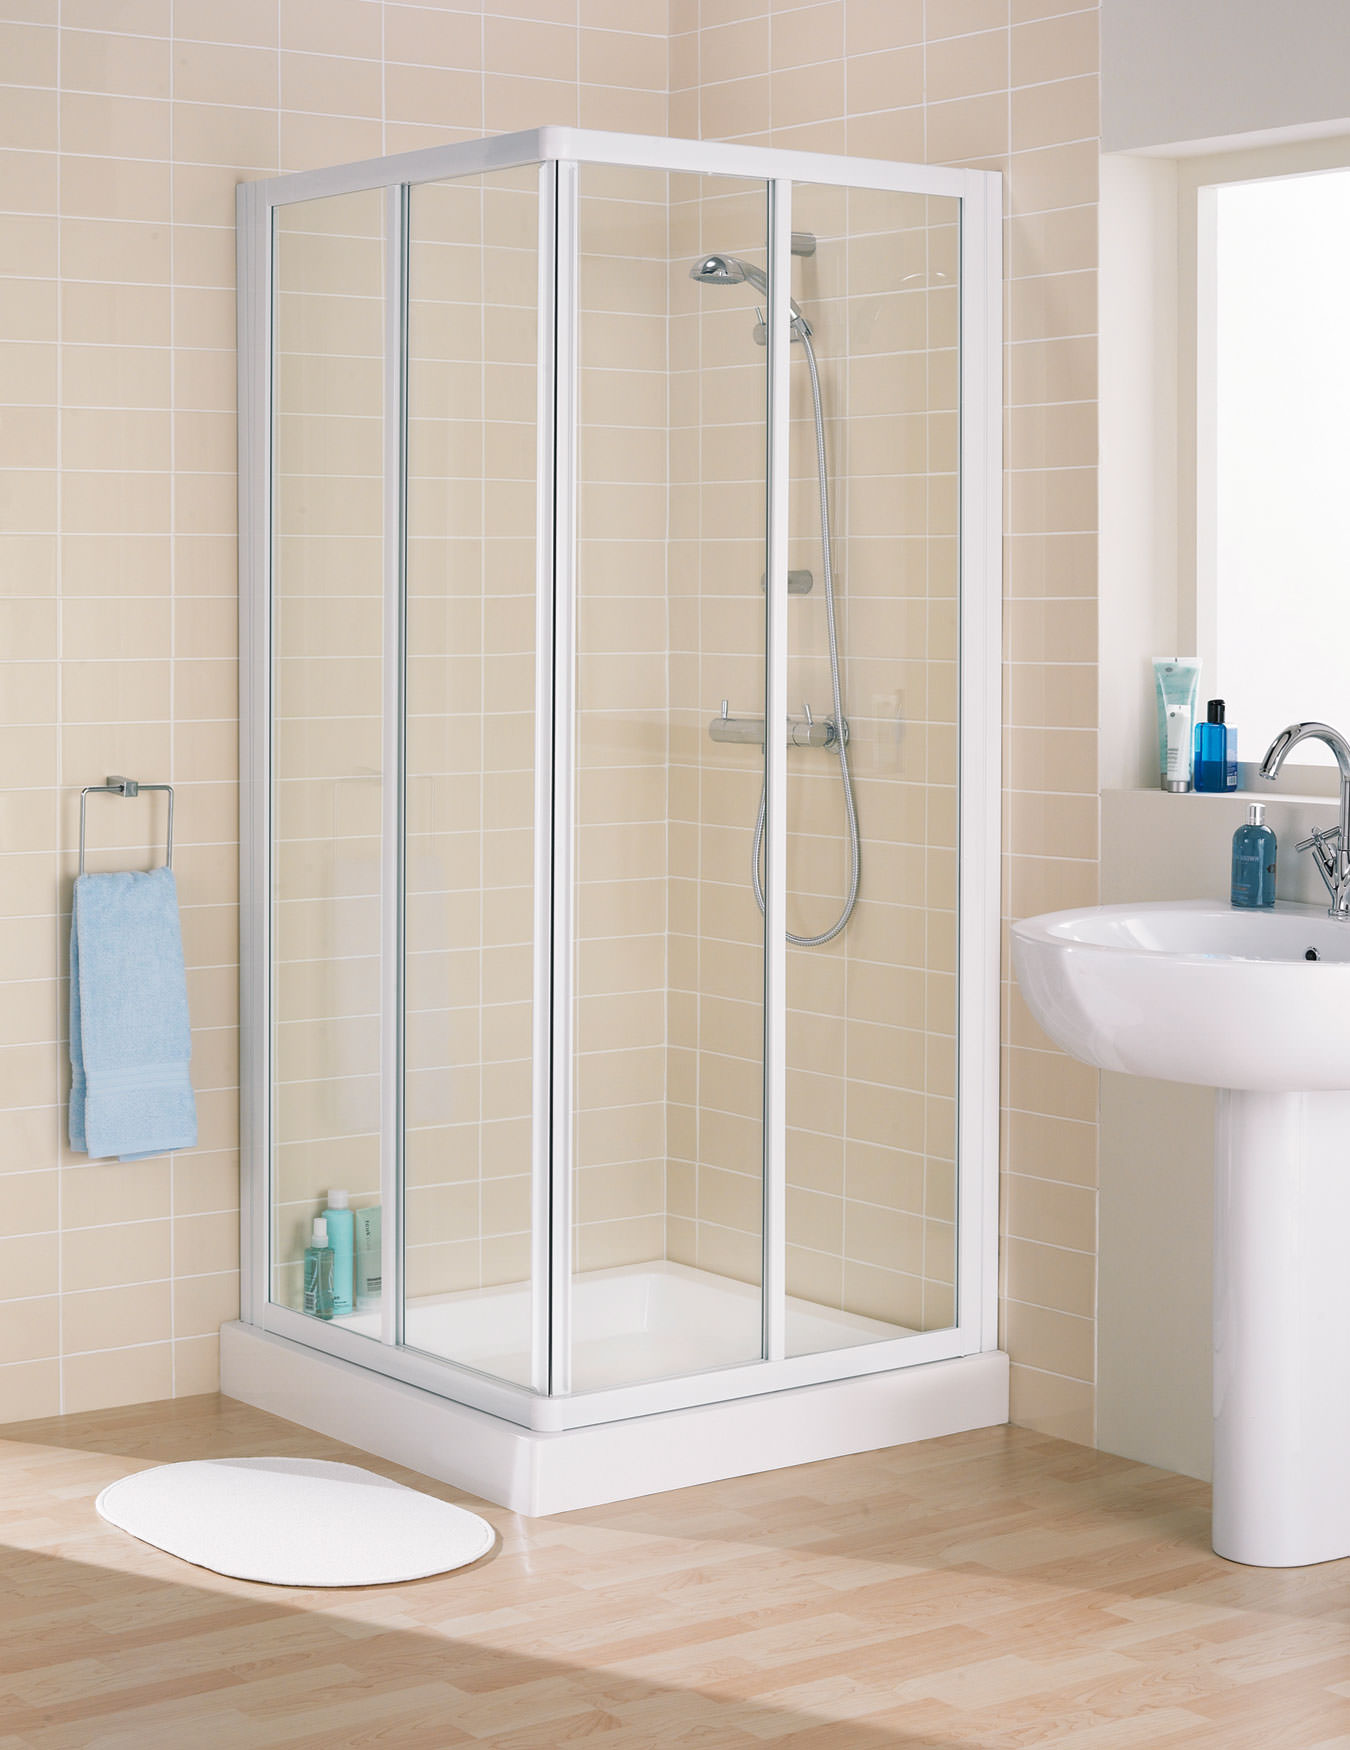 Designs For Small Bathrooms Lakes Classic Framed Corner Entry Shower Enclosure 800mm White